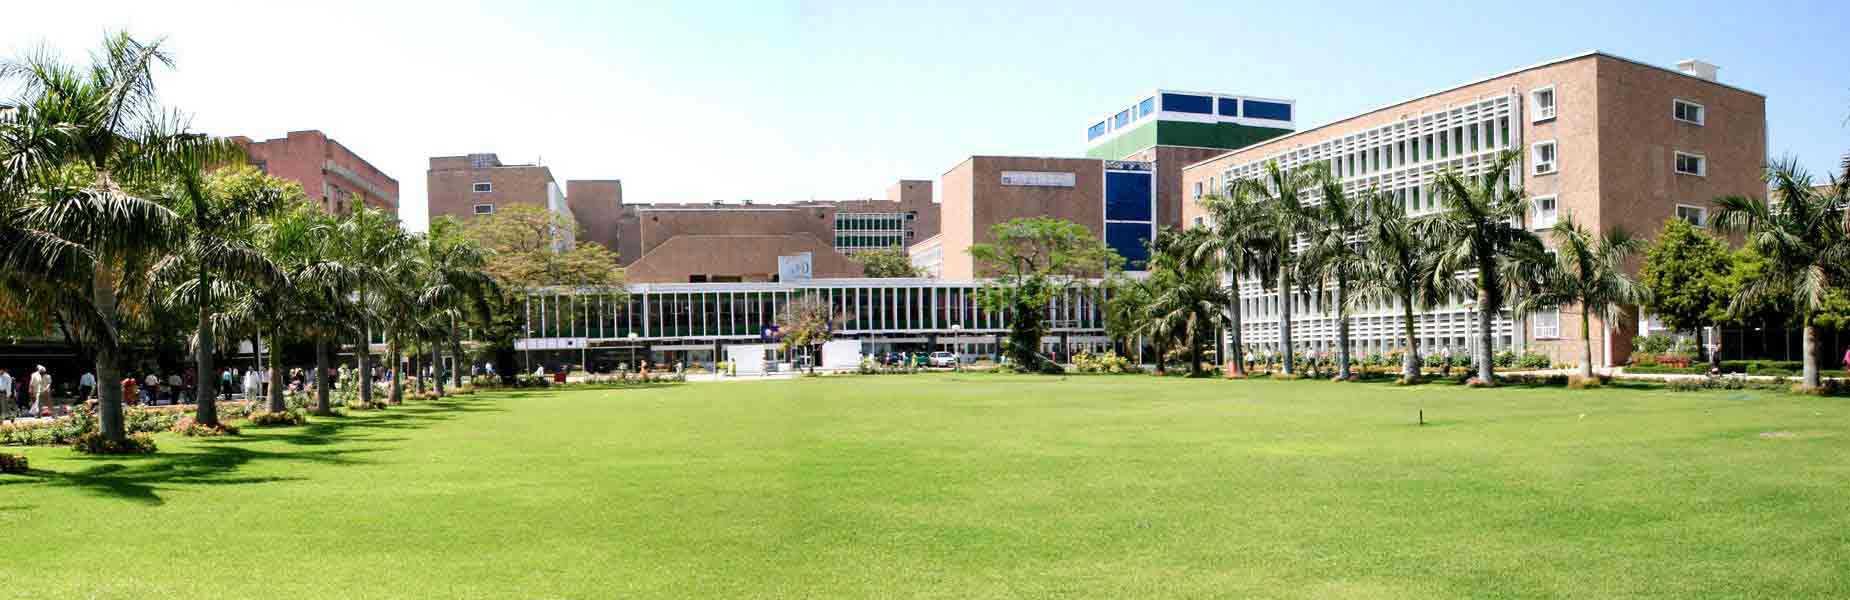 College of Nursing All India Institute of Medical Sciences, New Delhi